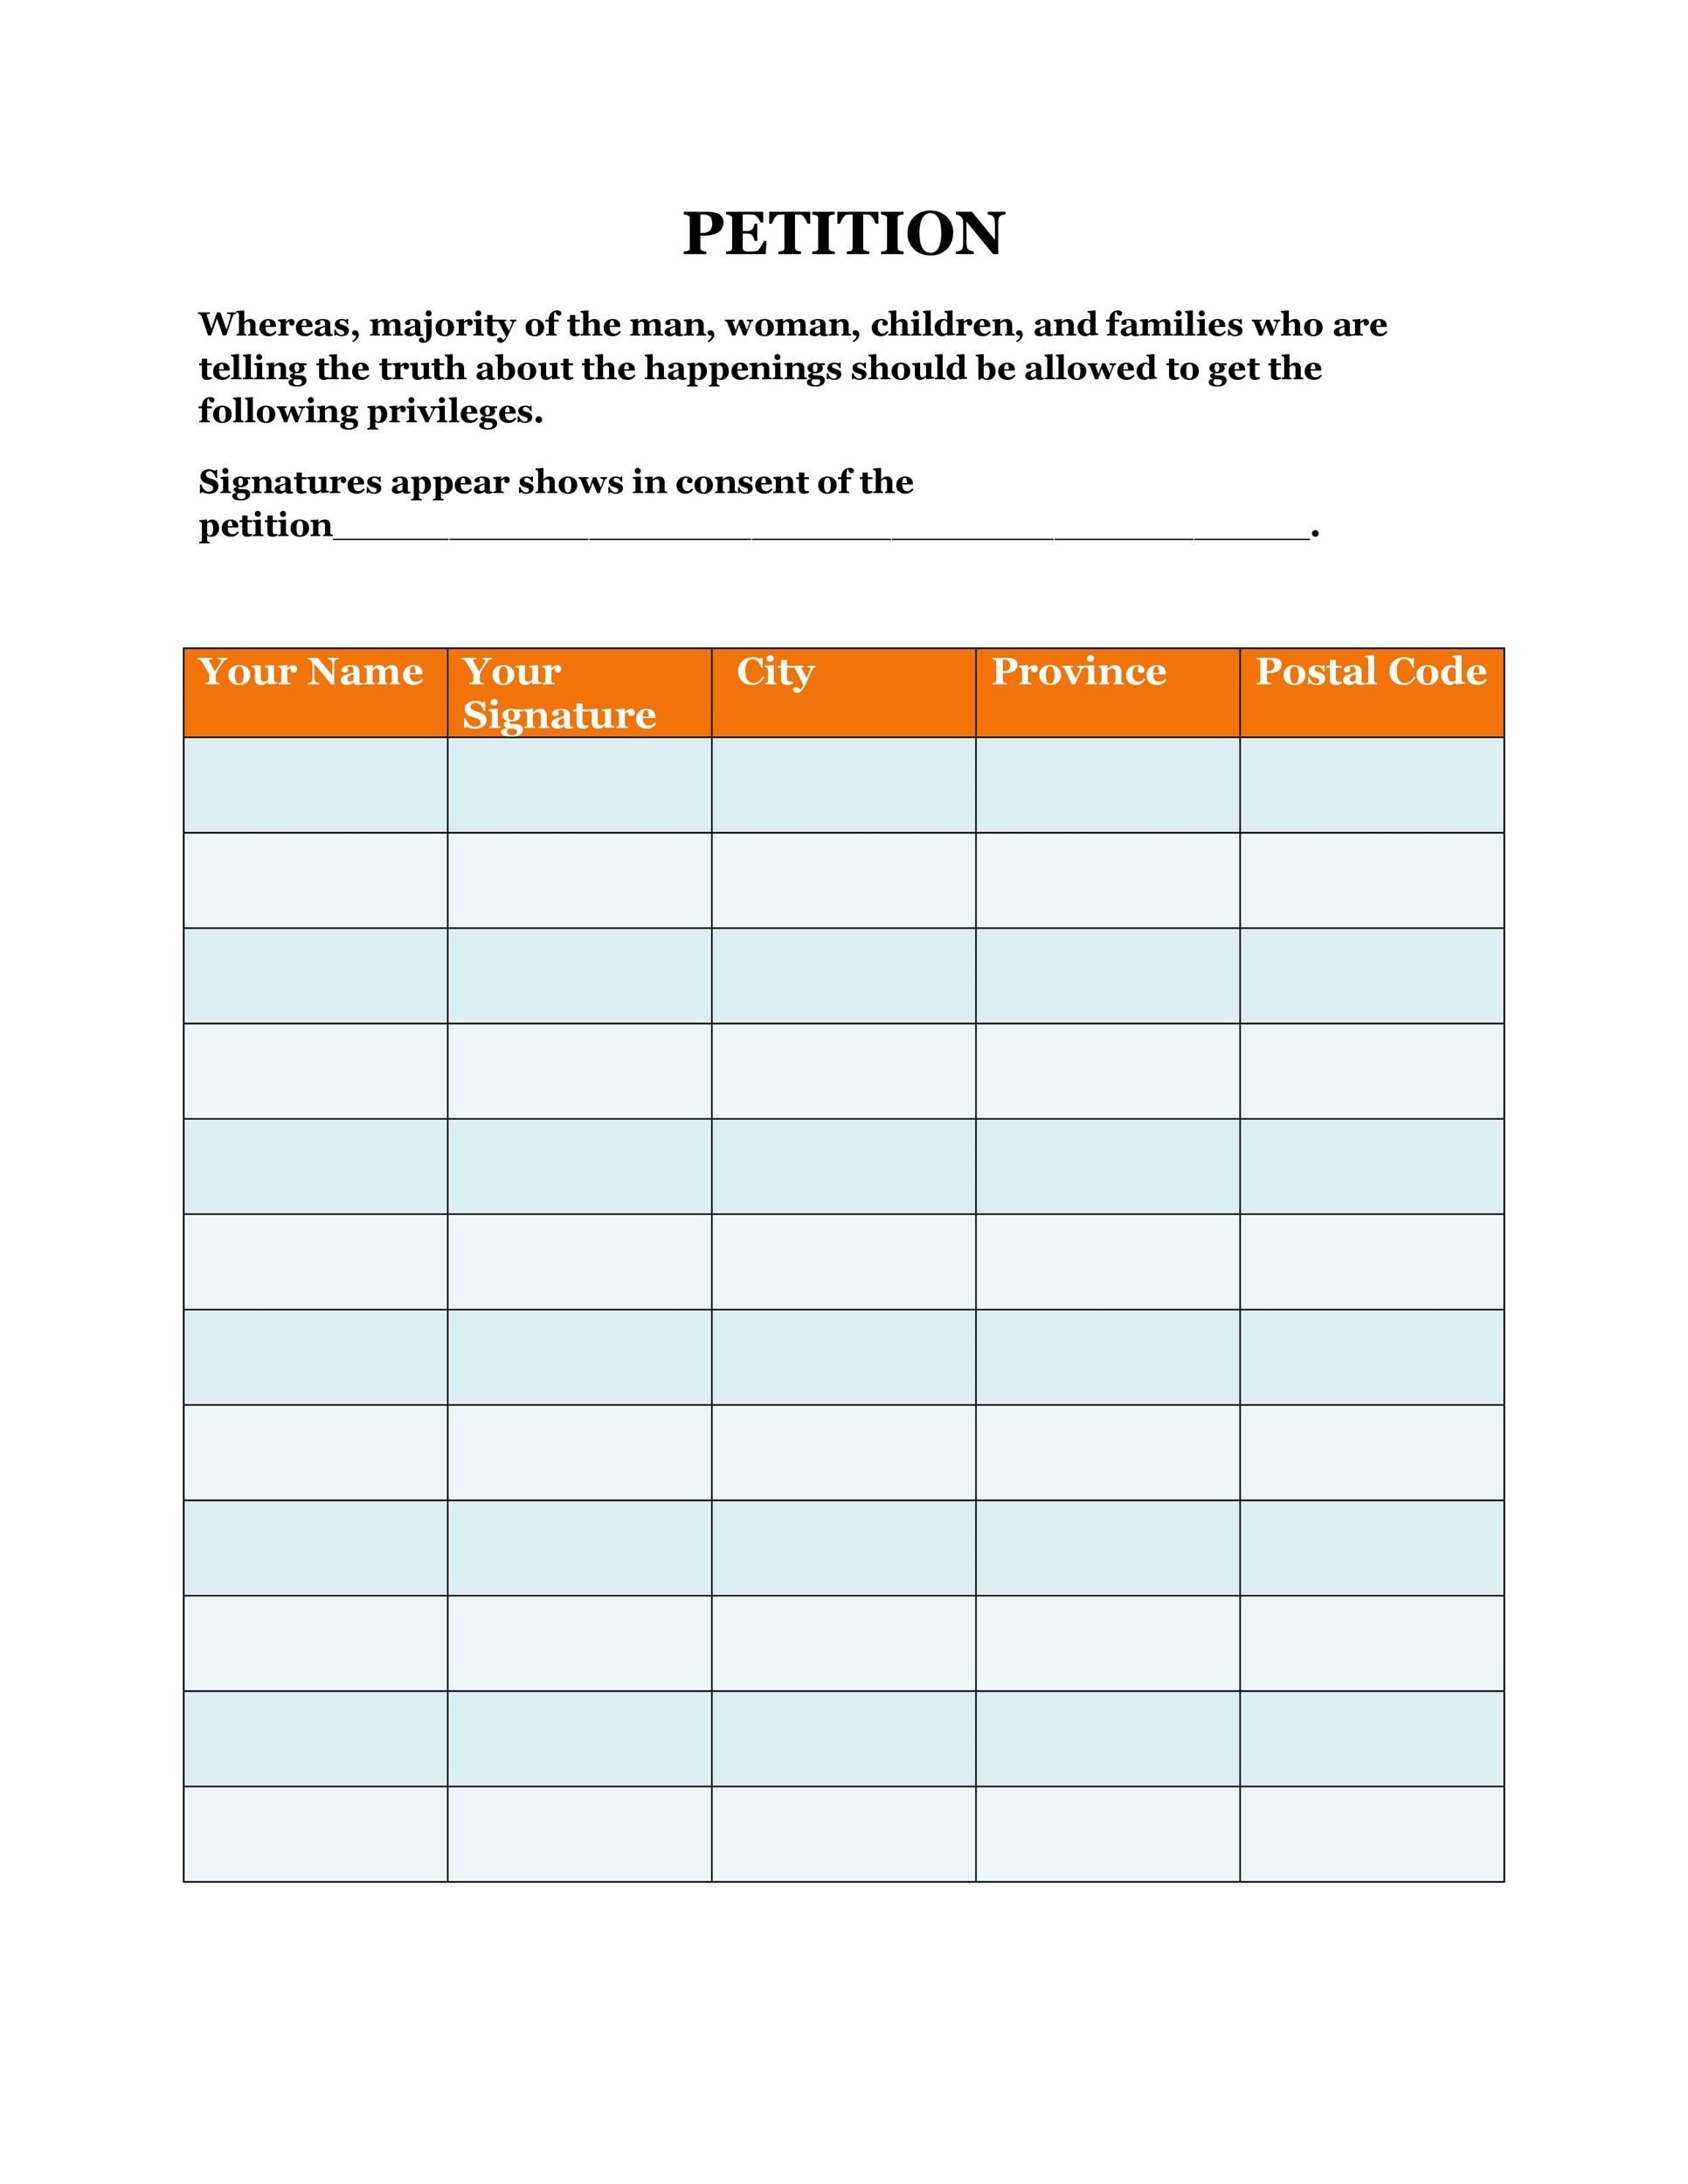 Petition Format Petition Image Petition Templates Word Excel Pdf - petition examples